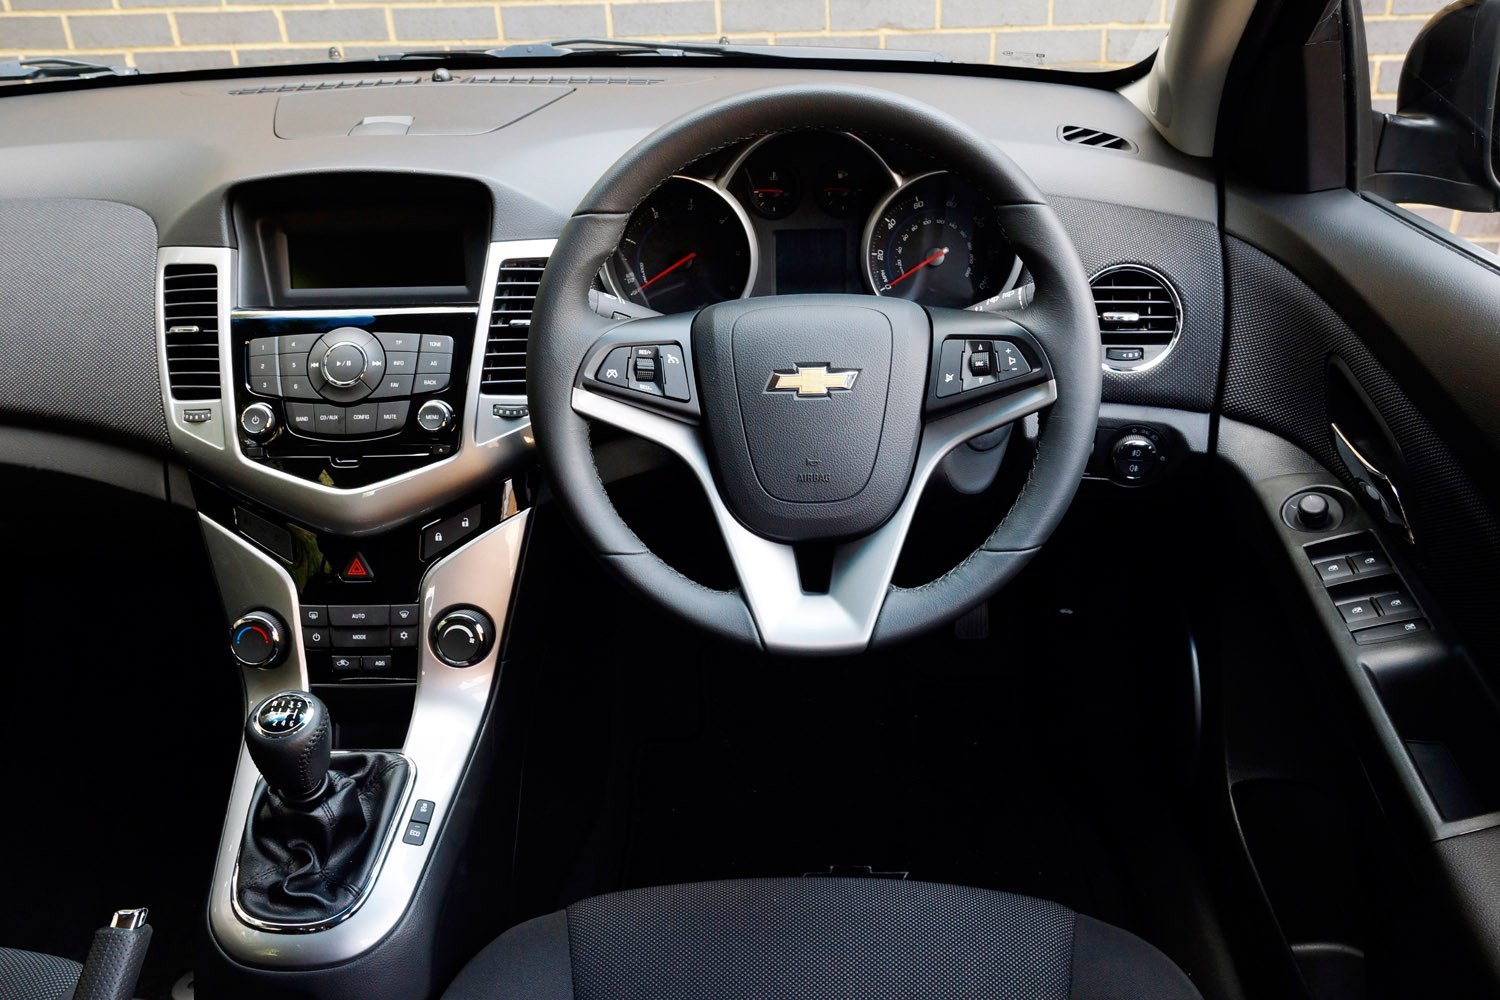 Chevrolet Cruze Station Wagon 2012 2015 Features Equipment And Accessories Parkers